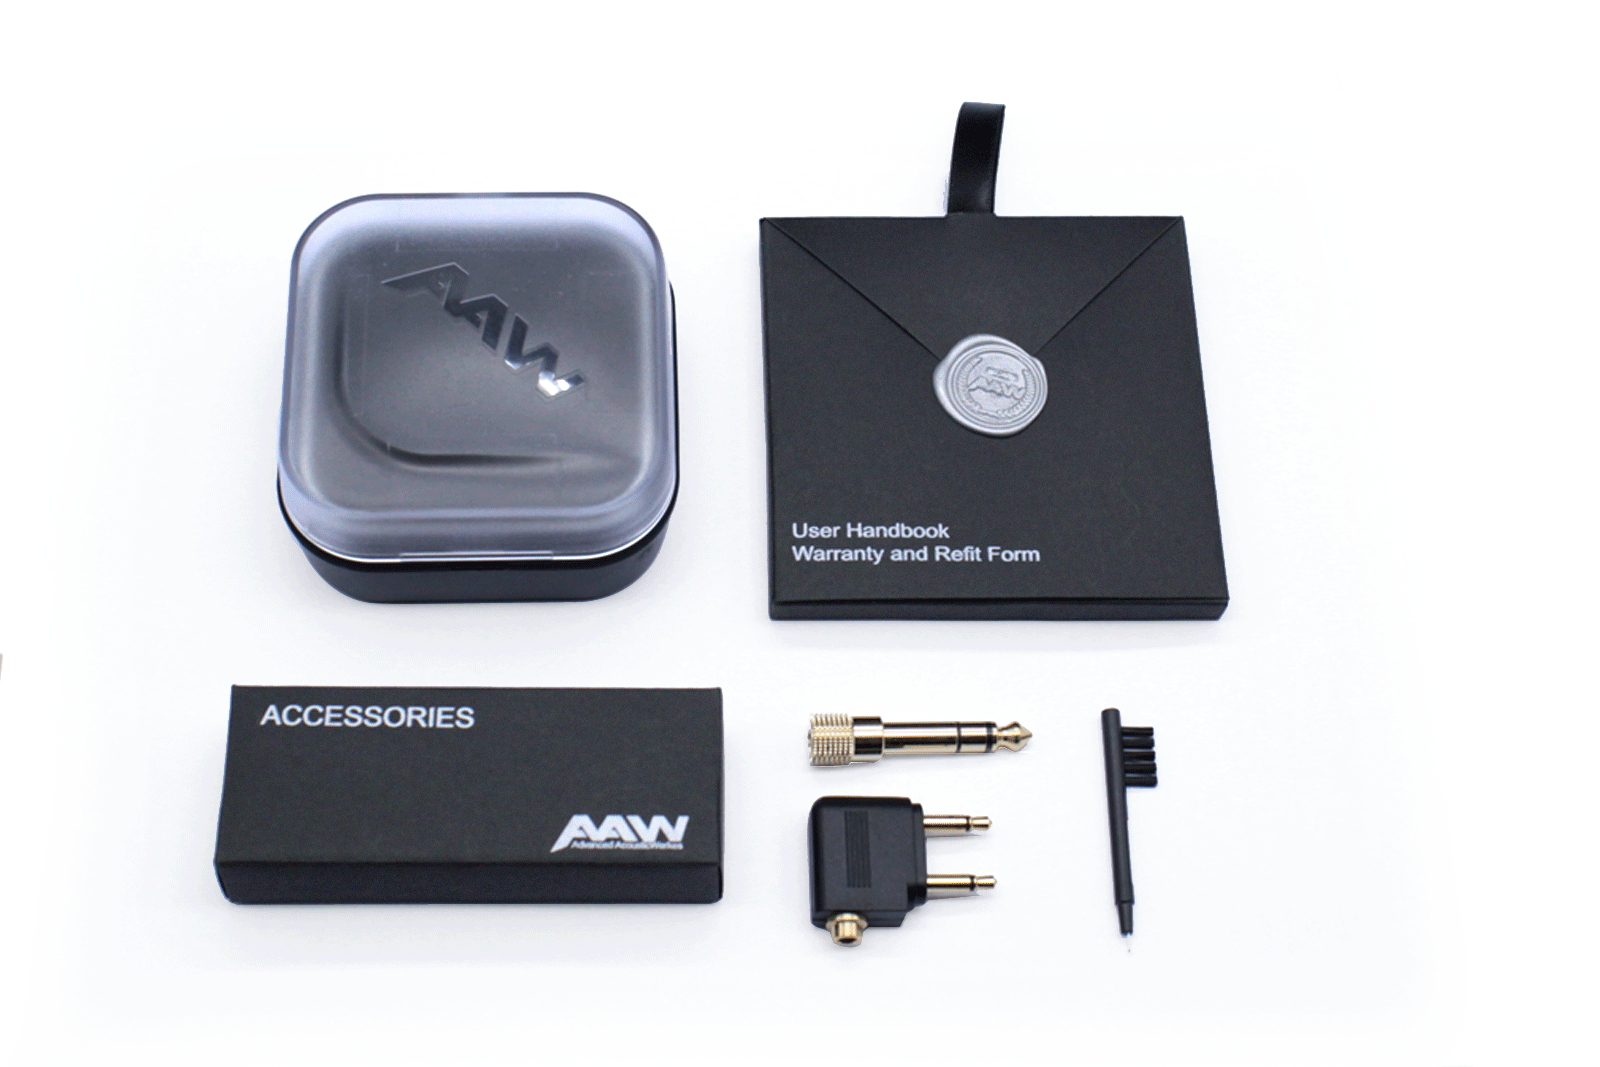 Advanced AcousticWerkes W500 Reference Hybrid Custom In-Ear Monitor - Advanced AcousticWerkes